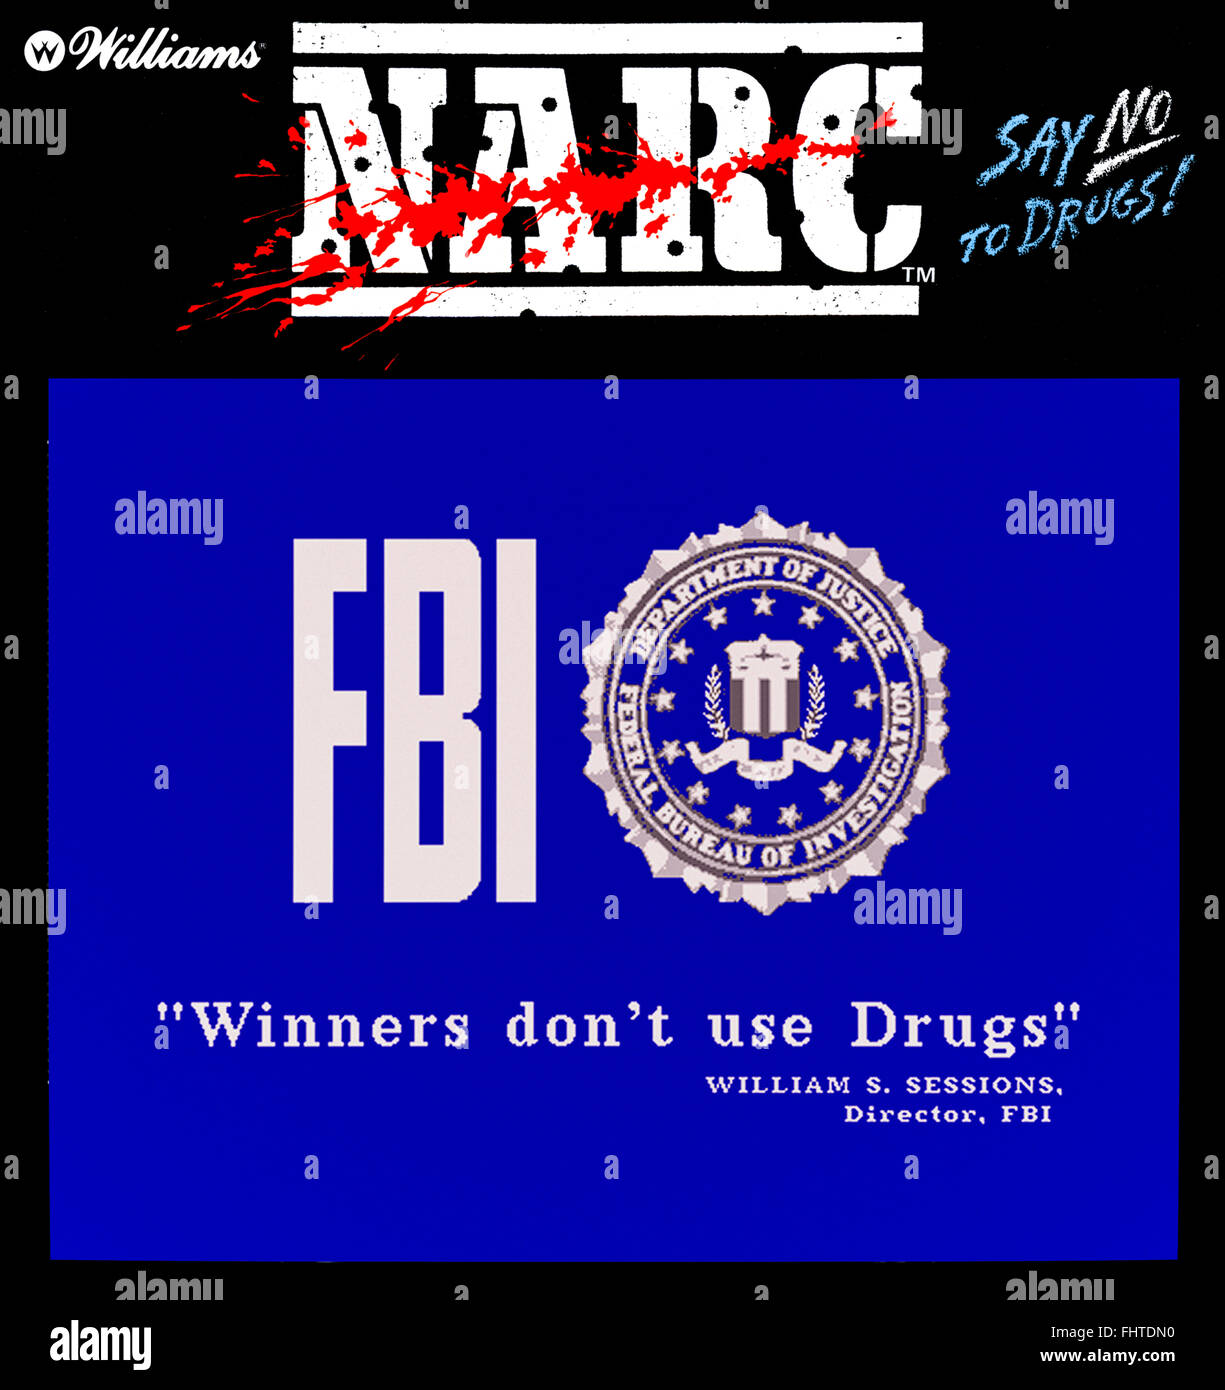 Narc' arcade game produced by Williams in 1988 featuring the